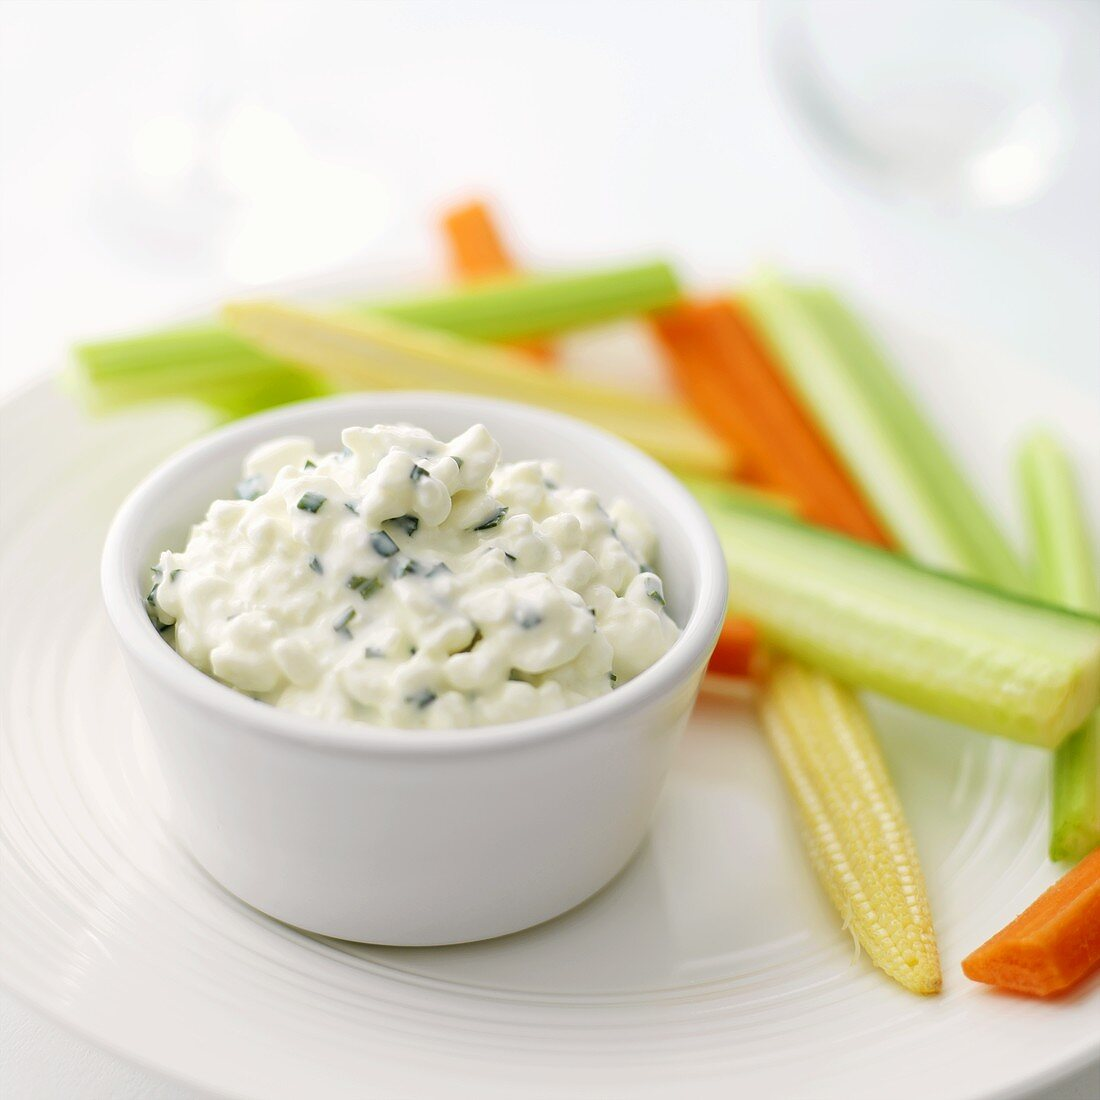 Cottage cheese with chives and vegetable sticks